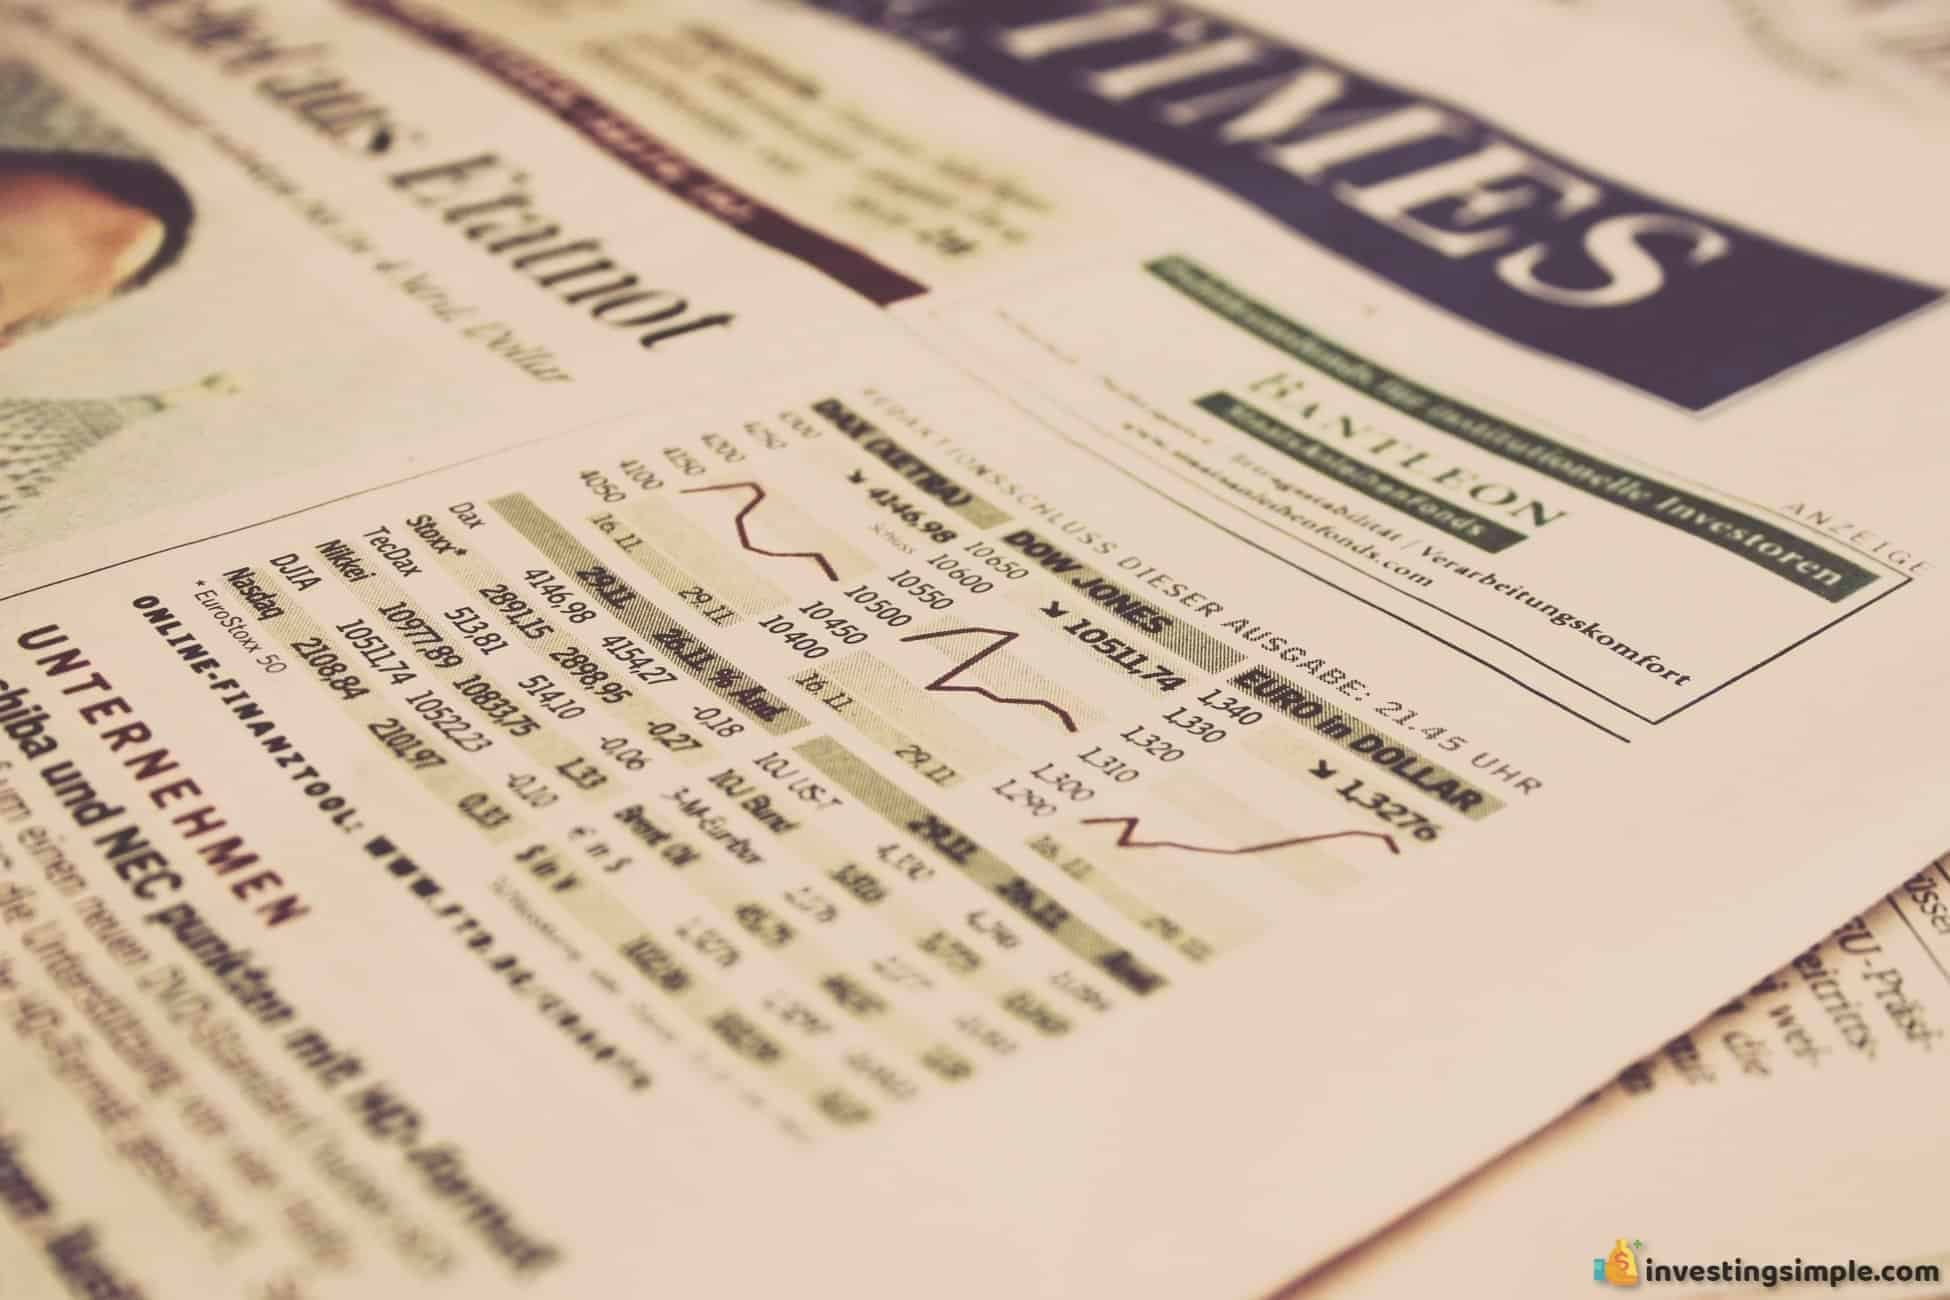 19 Stock Market Terms to Know